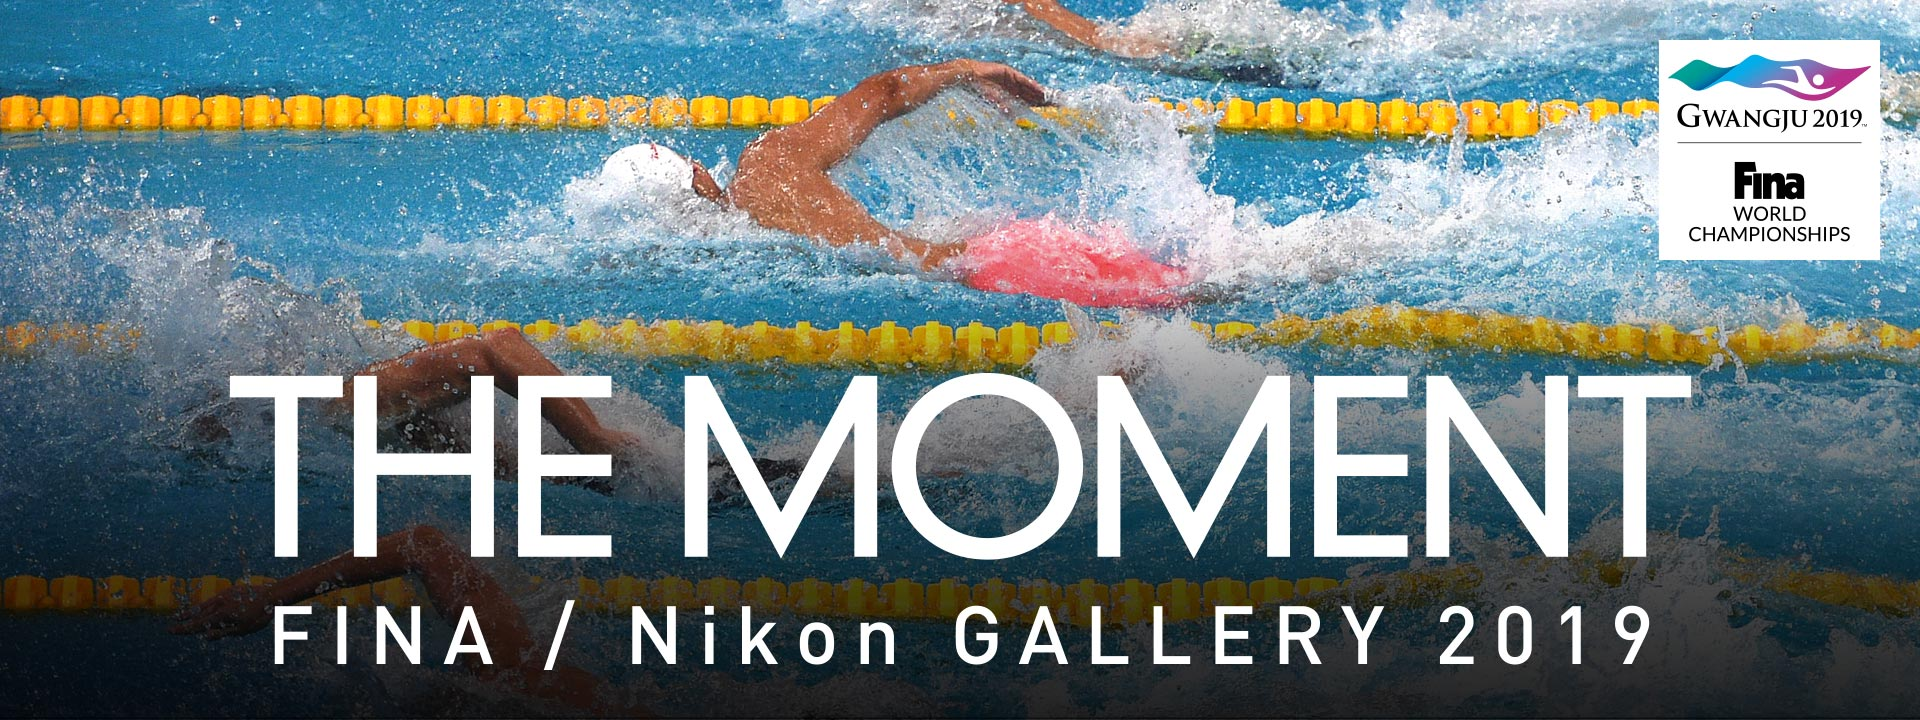 FINA/Nikon GALLERY 2019 -THE MOMENT-